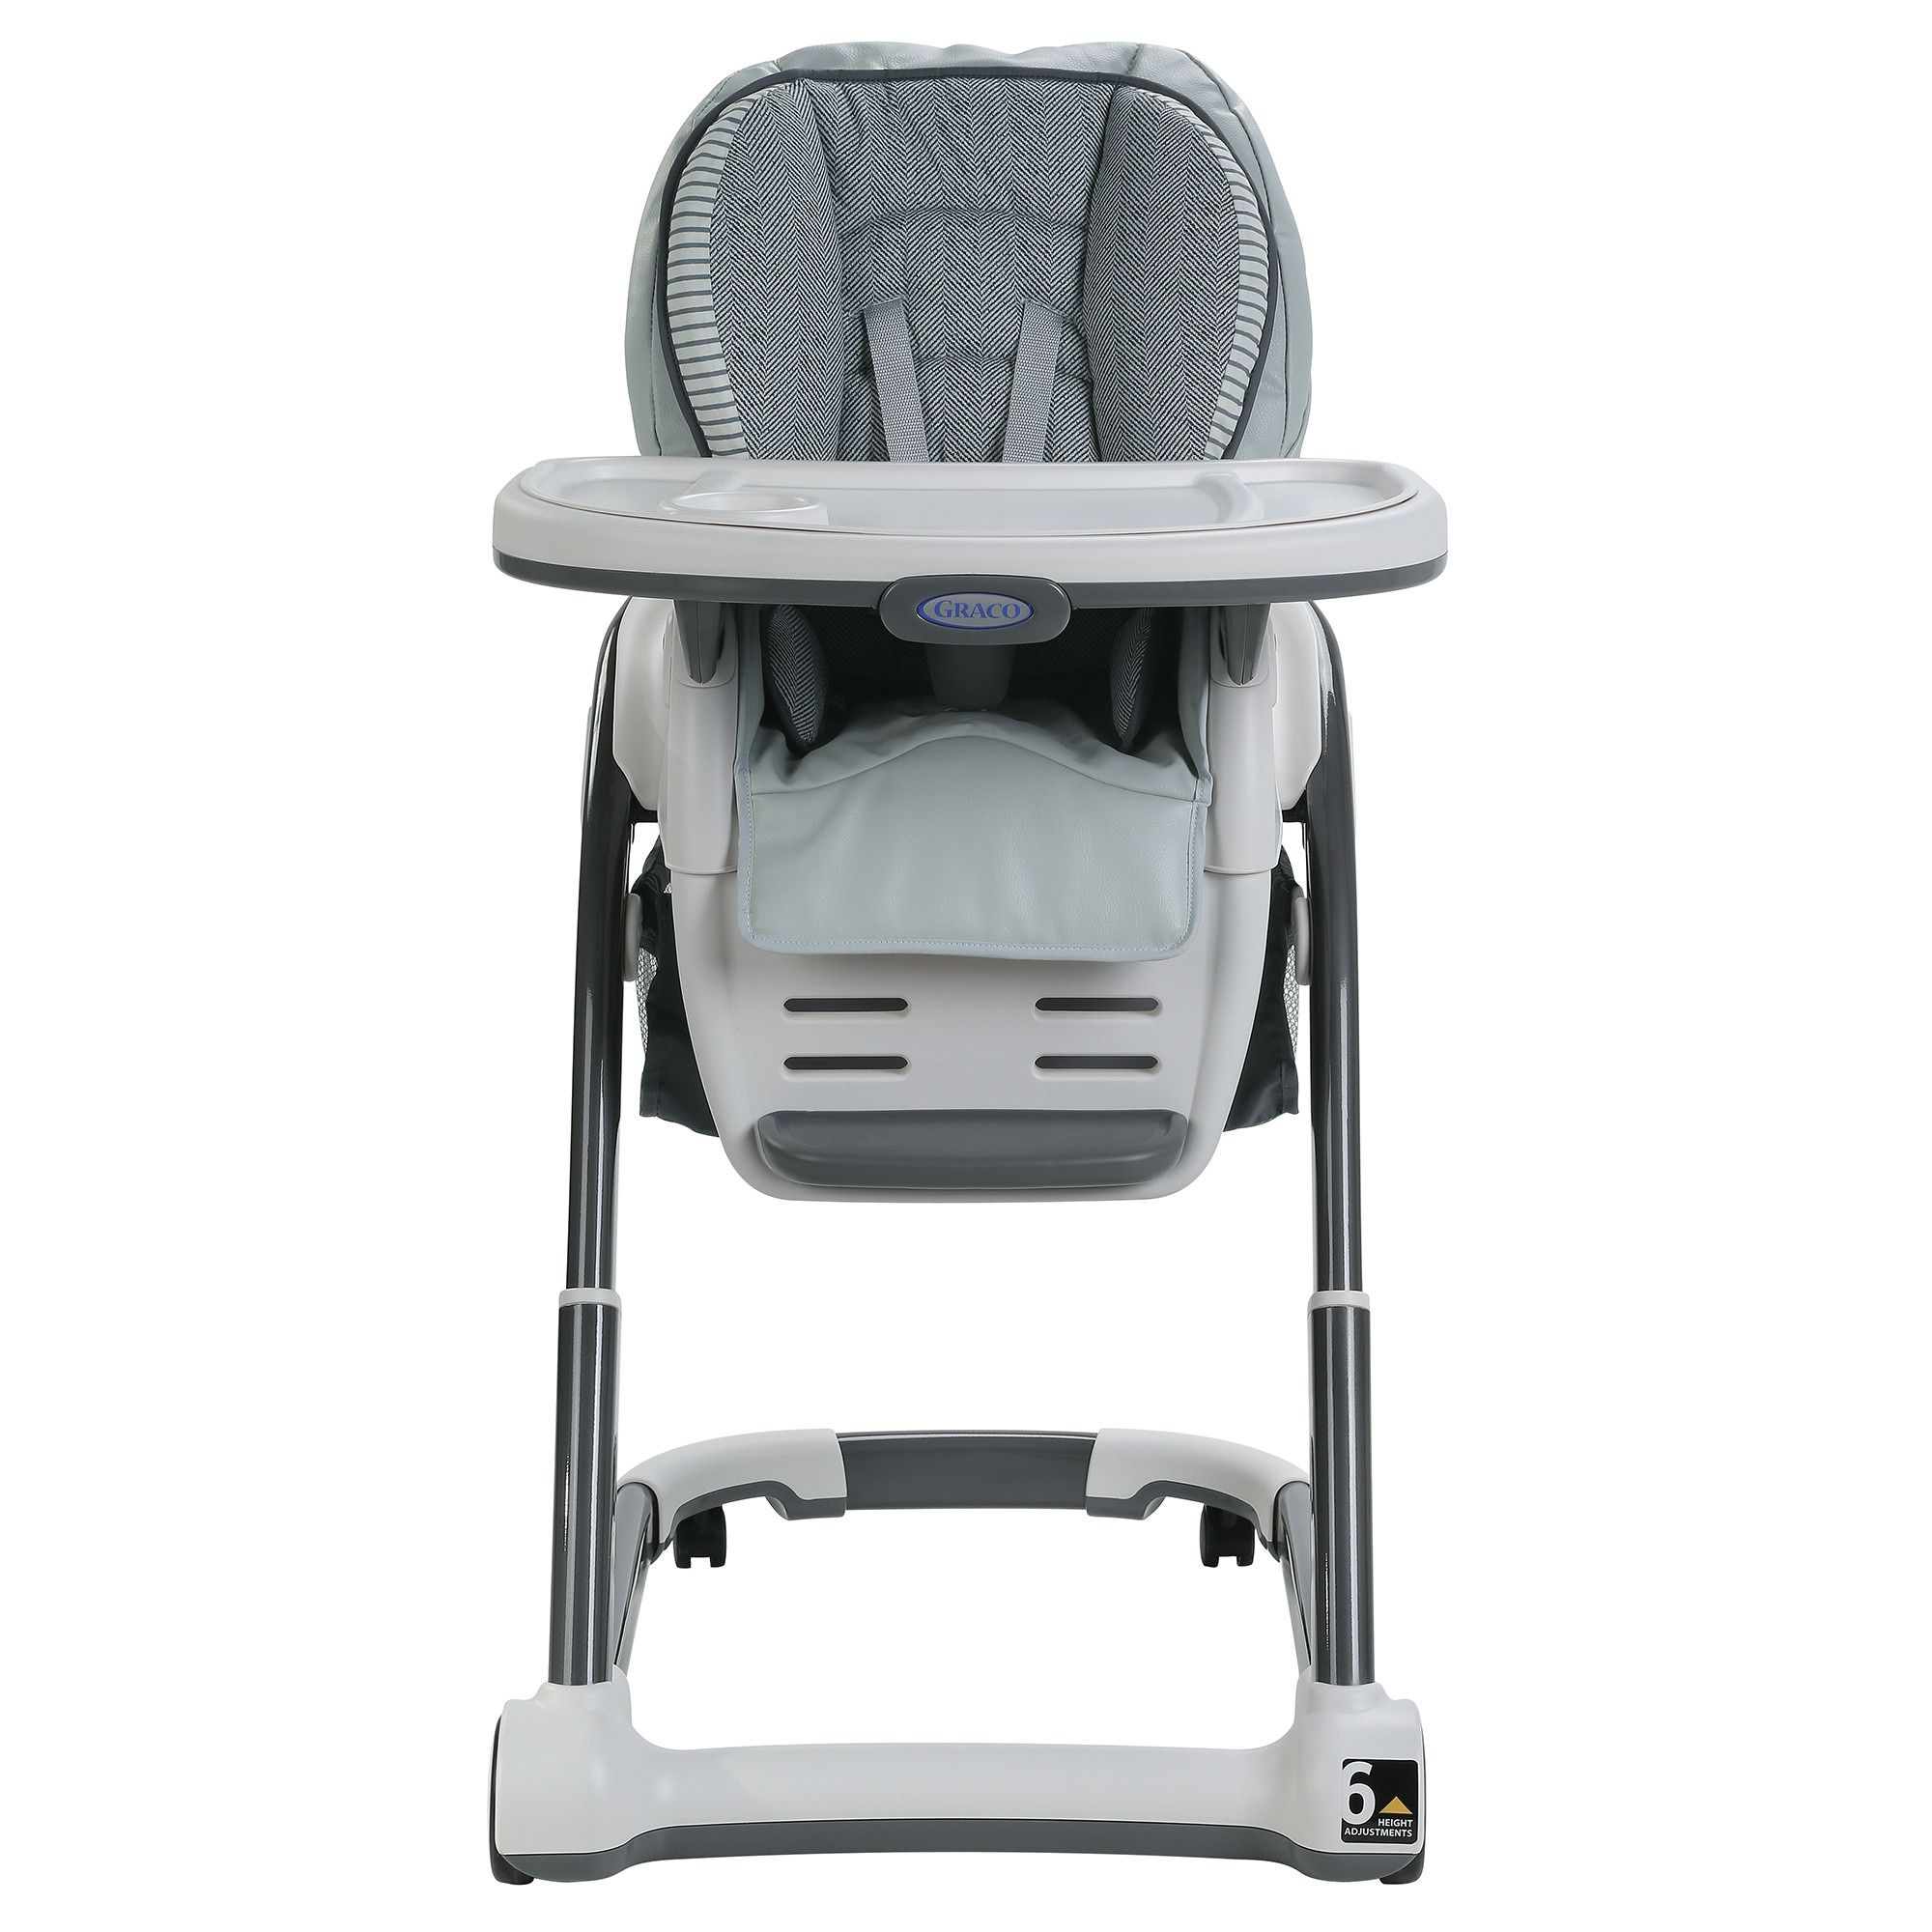 Baby Portable high chairs, Chair